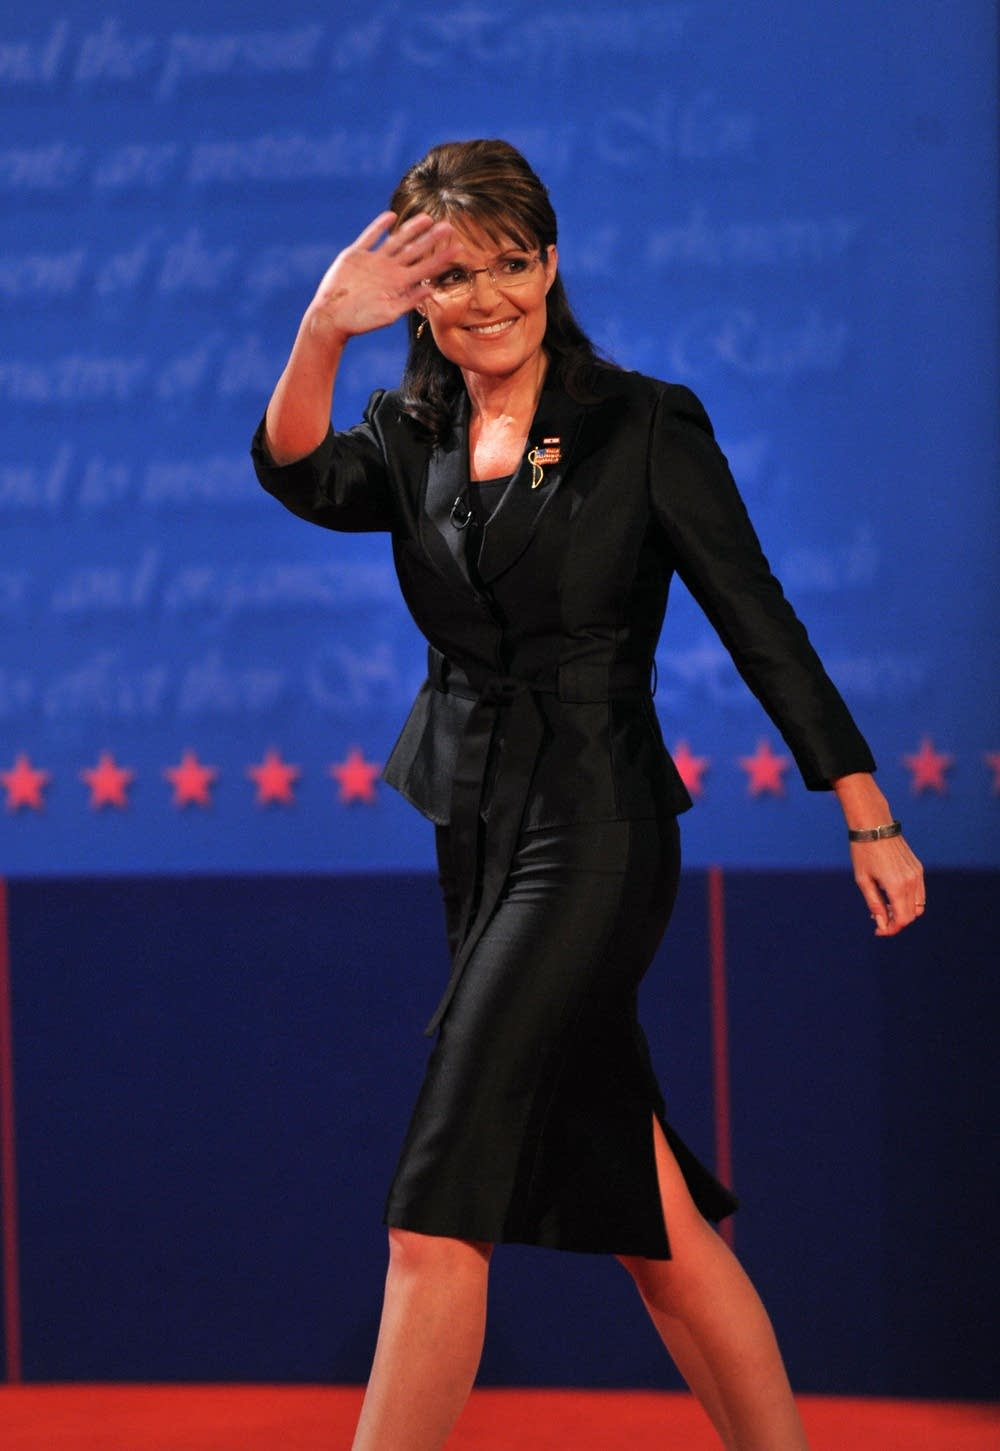 Republican Sarah Palin arrives on stage